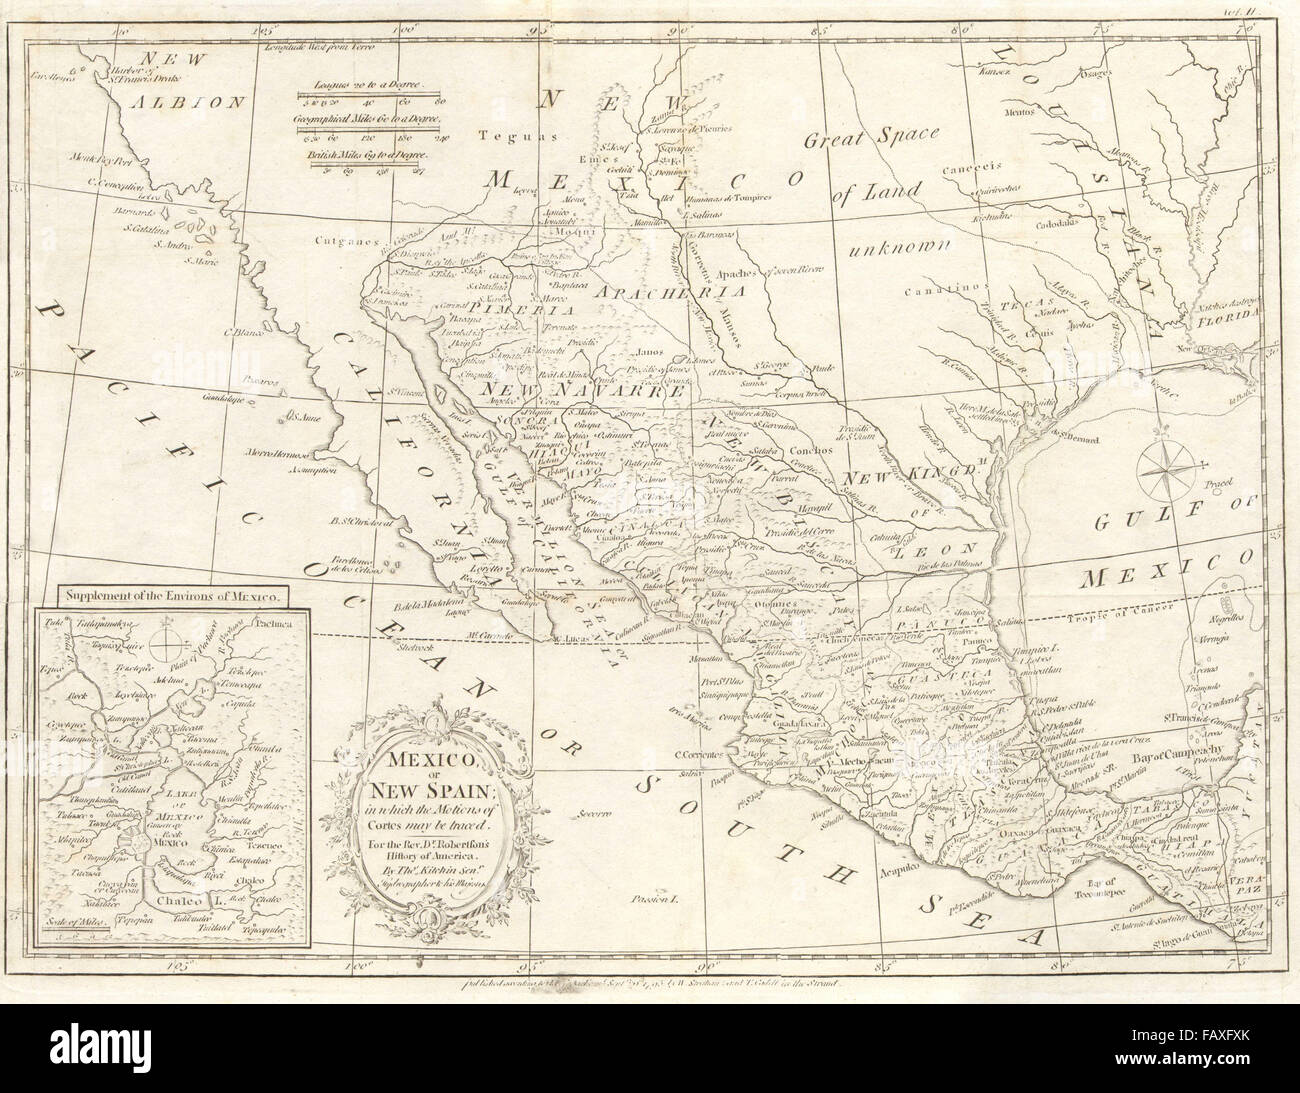 MEXICO/NEW SPAIN. 'Tecas' tribe & de la Salle's French colony in Texas, 1795 map - Stock Image